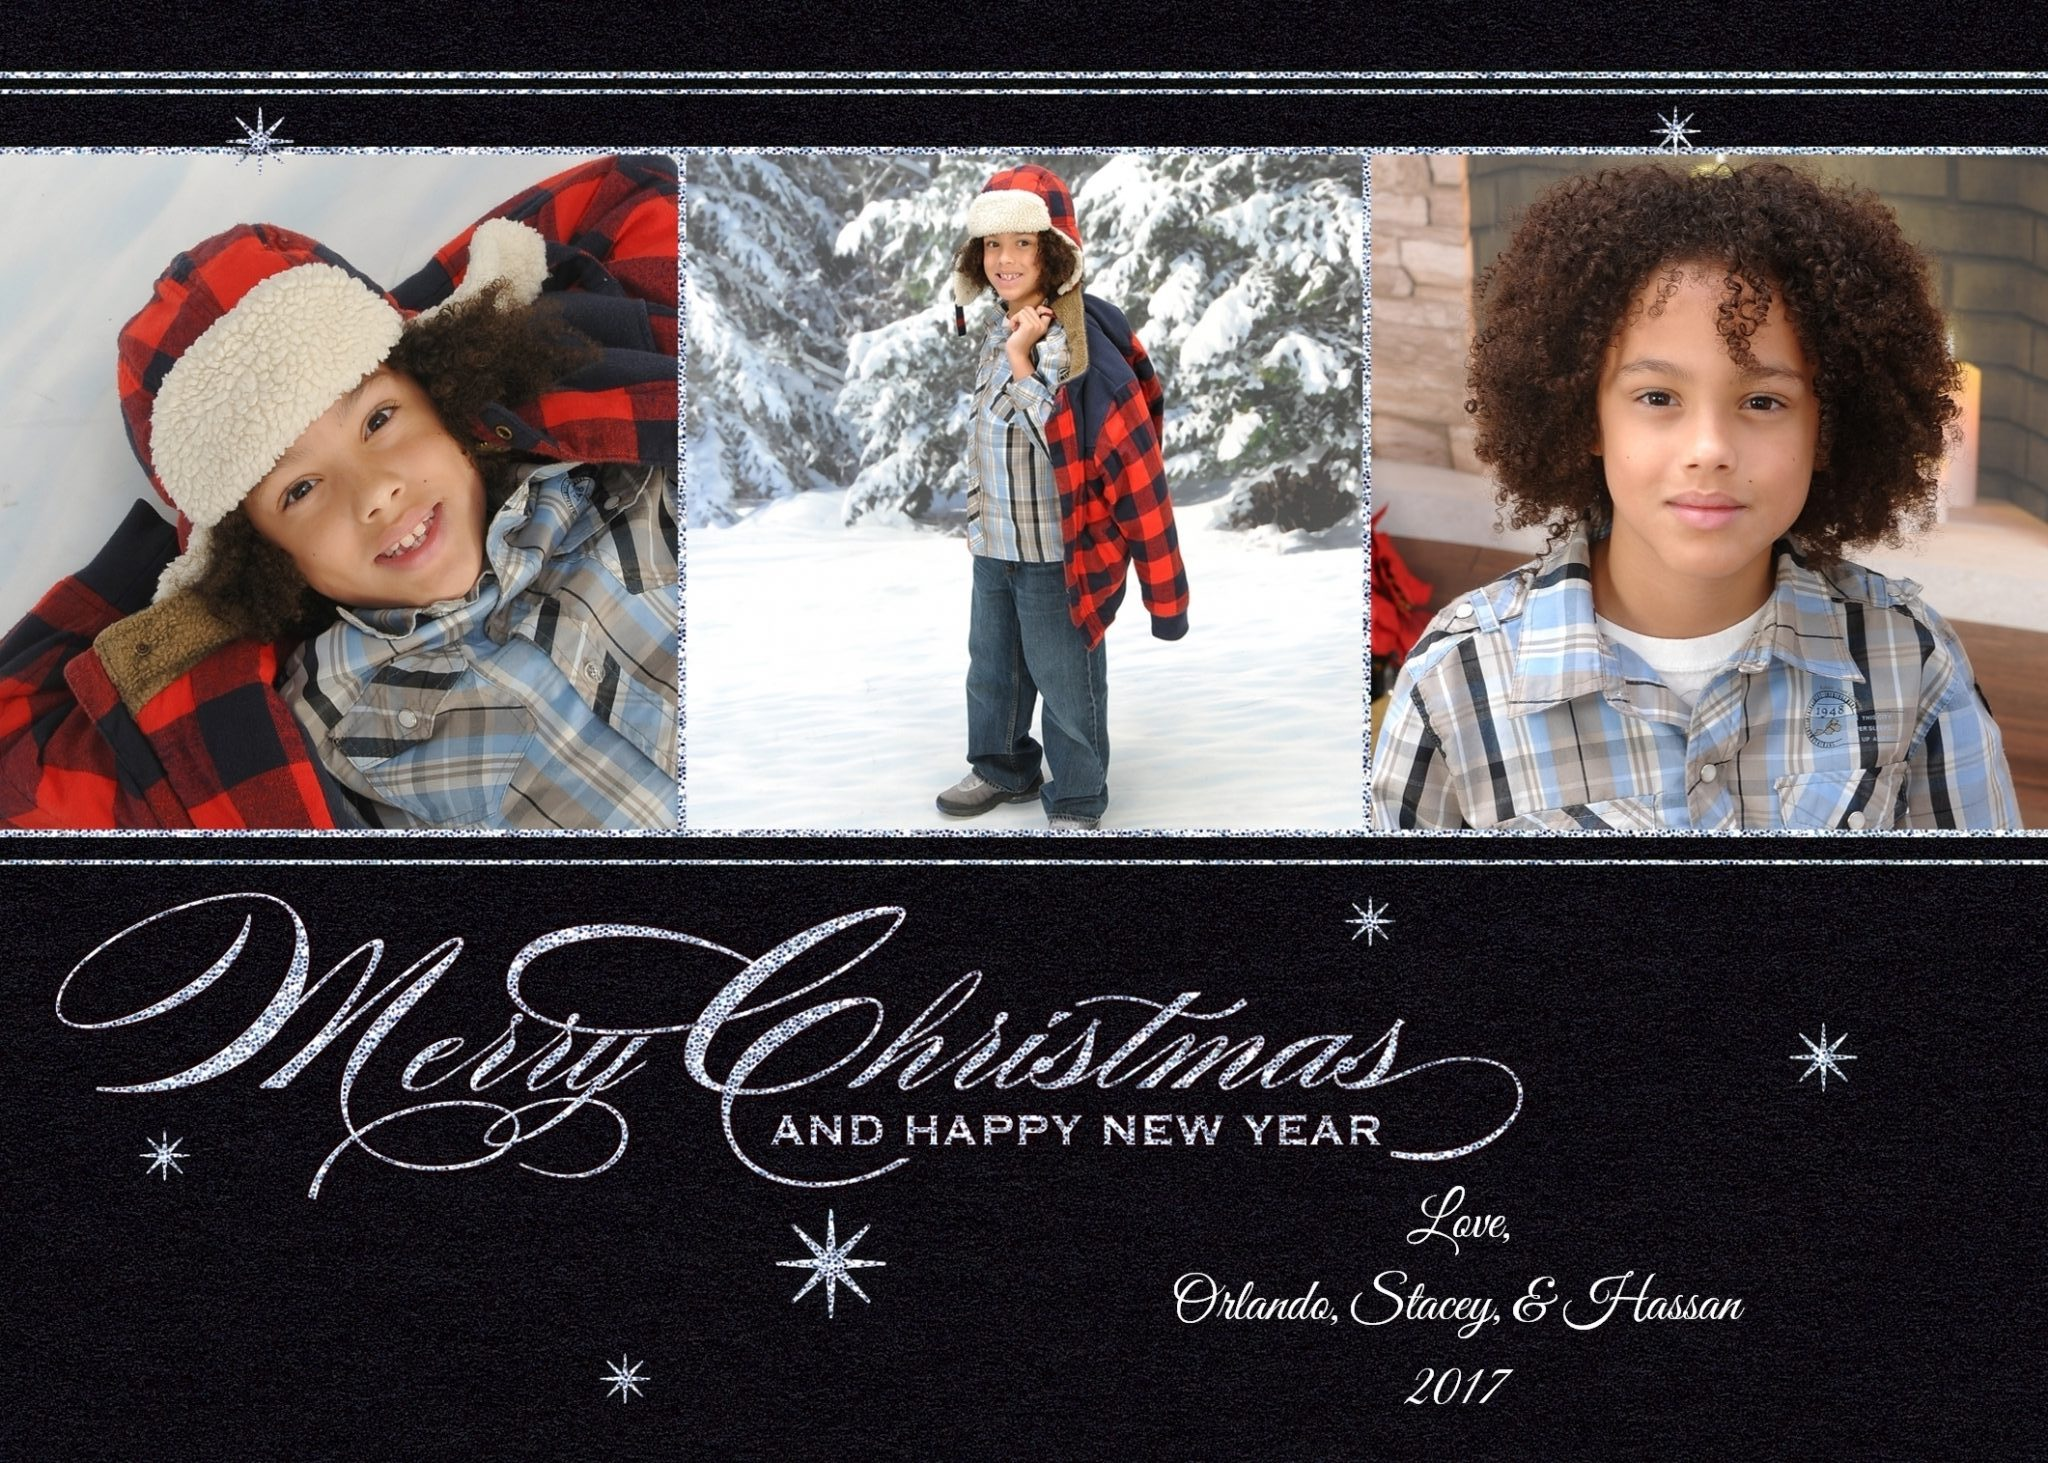 Capturing Memories this Holiday Season with Portrait Innovations